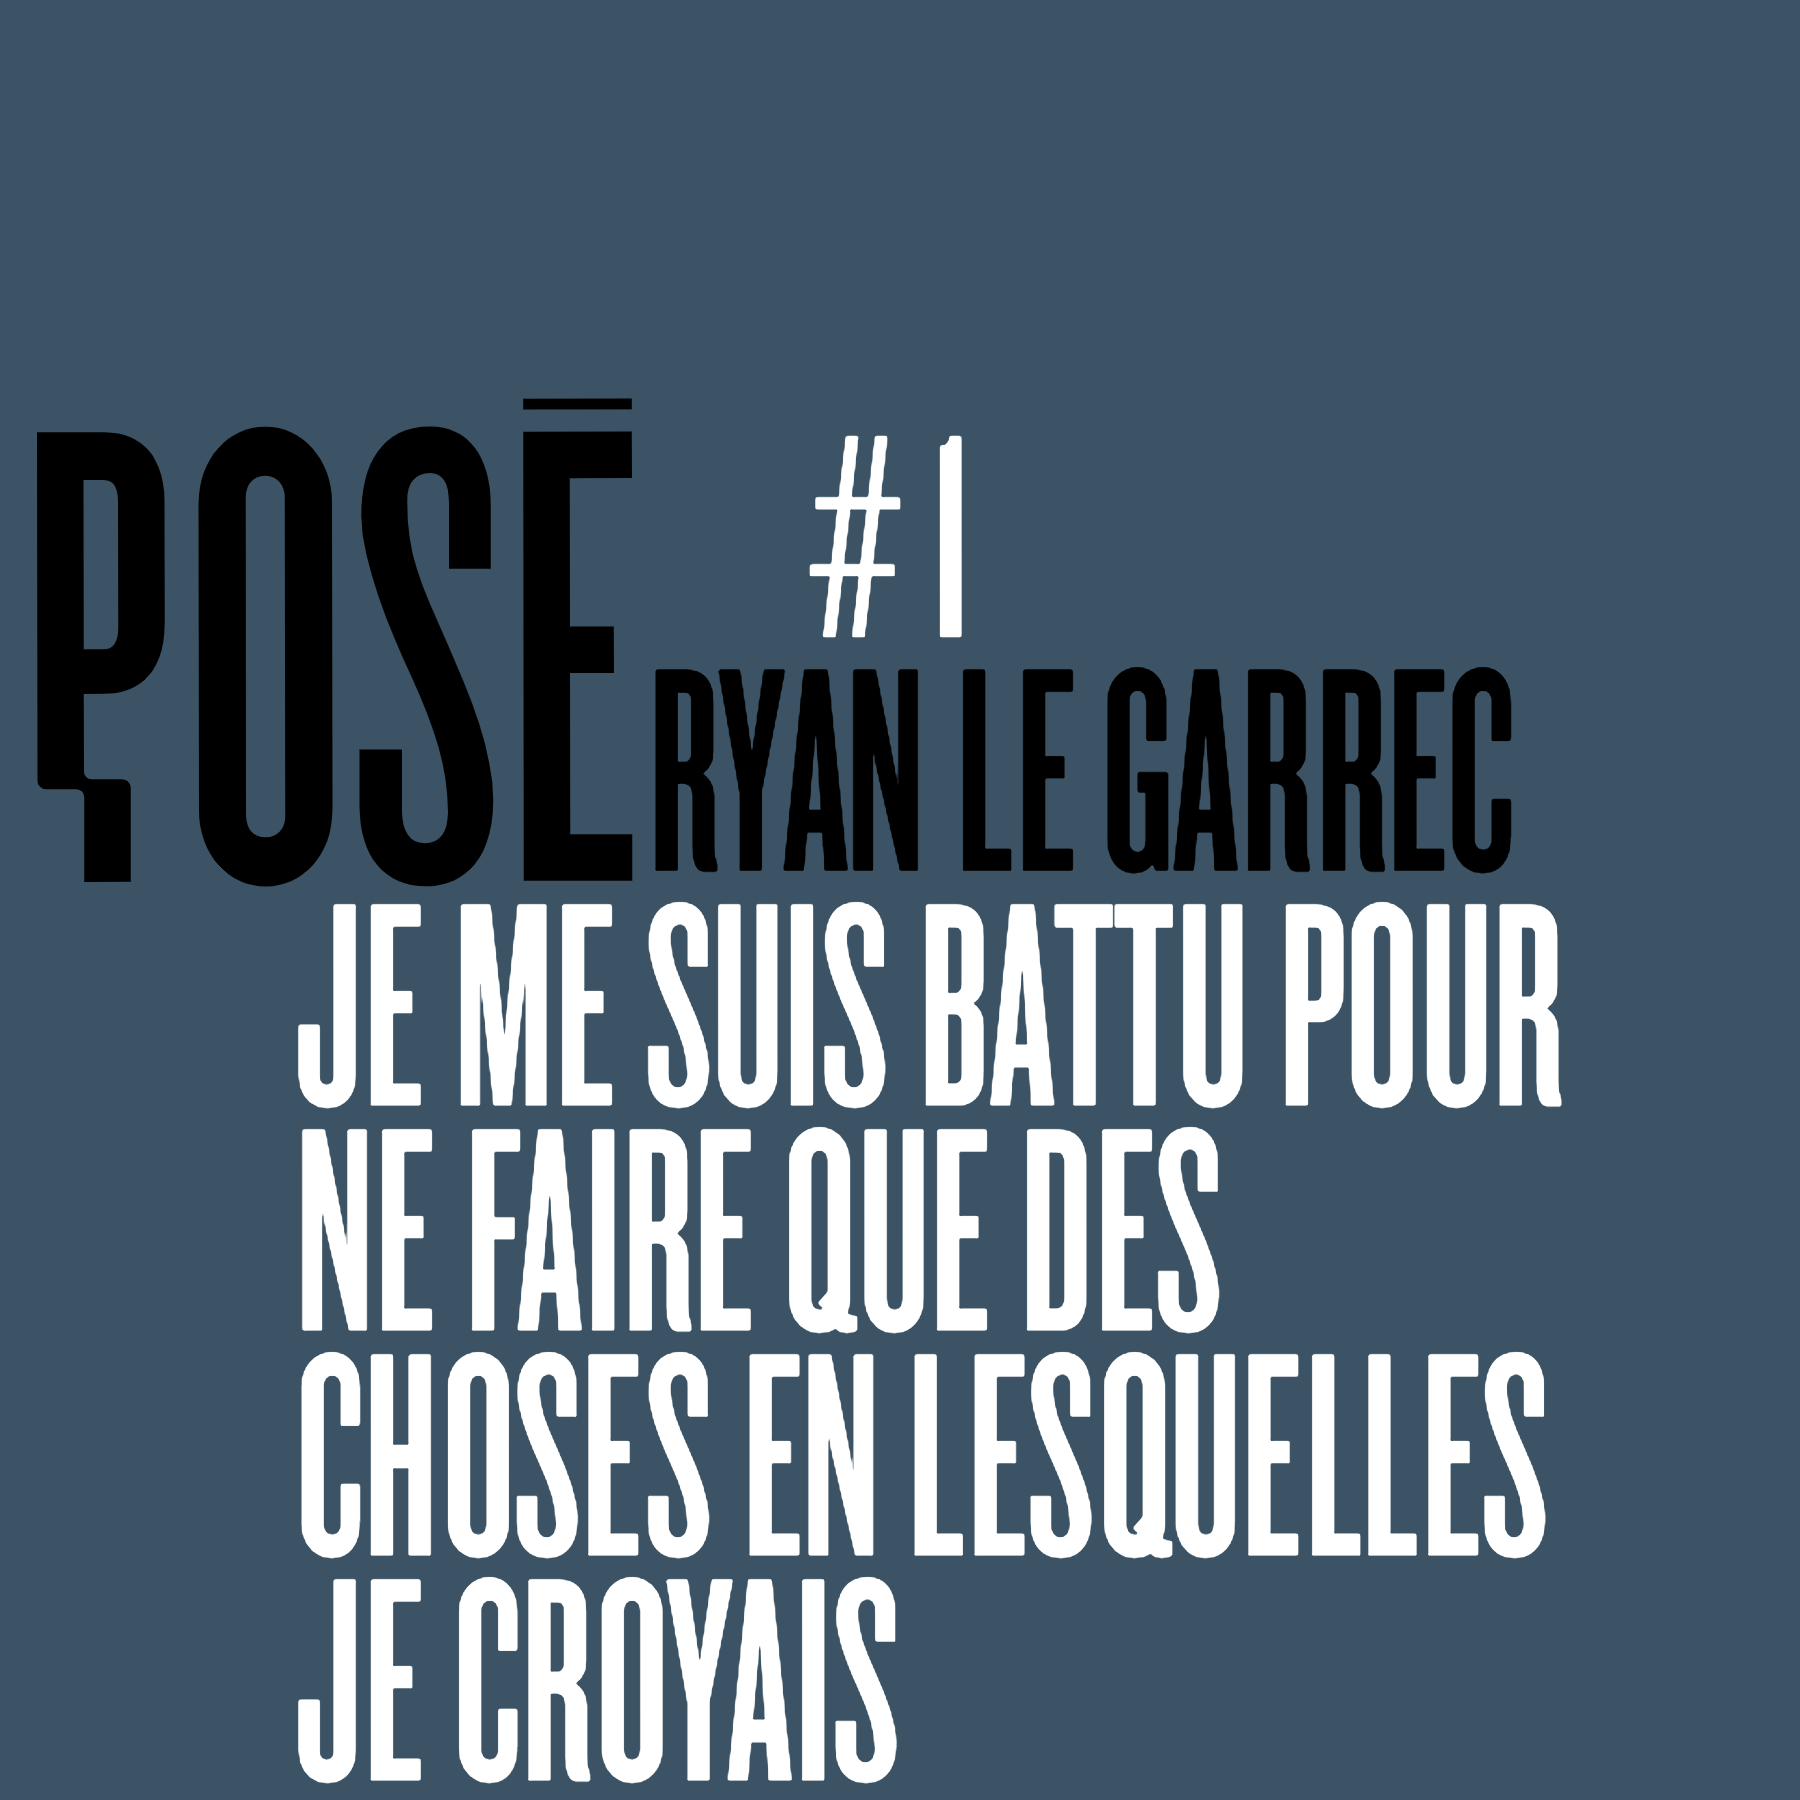 Pose cover Ryan Le Garrec